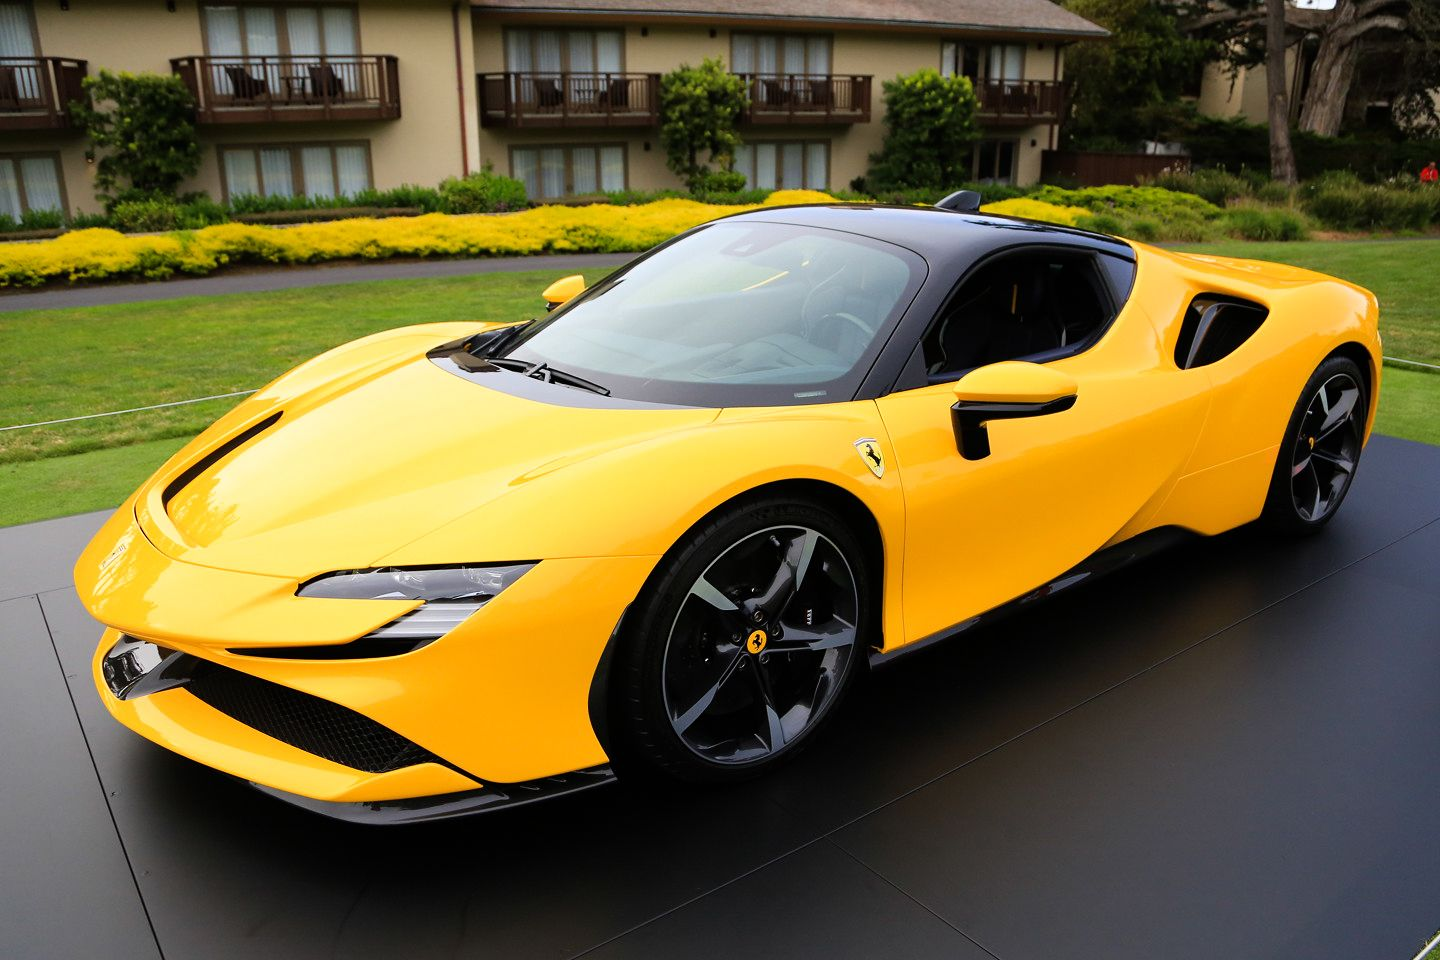 Ferrari SF90 Stradale Pricing for South Africa in 2020